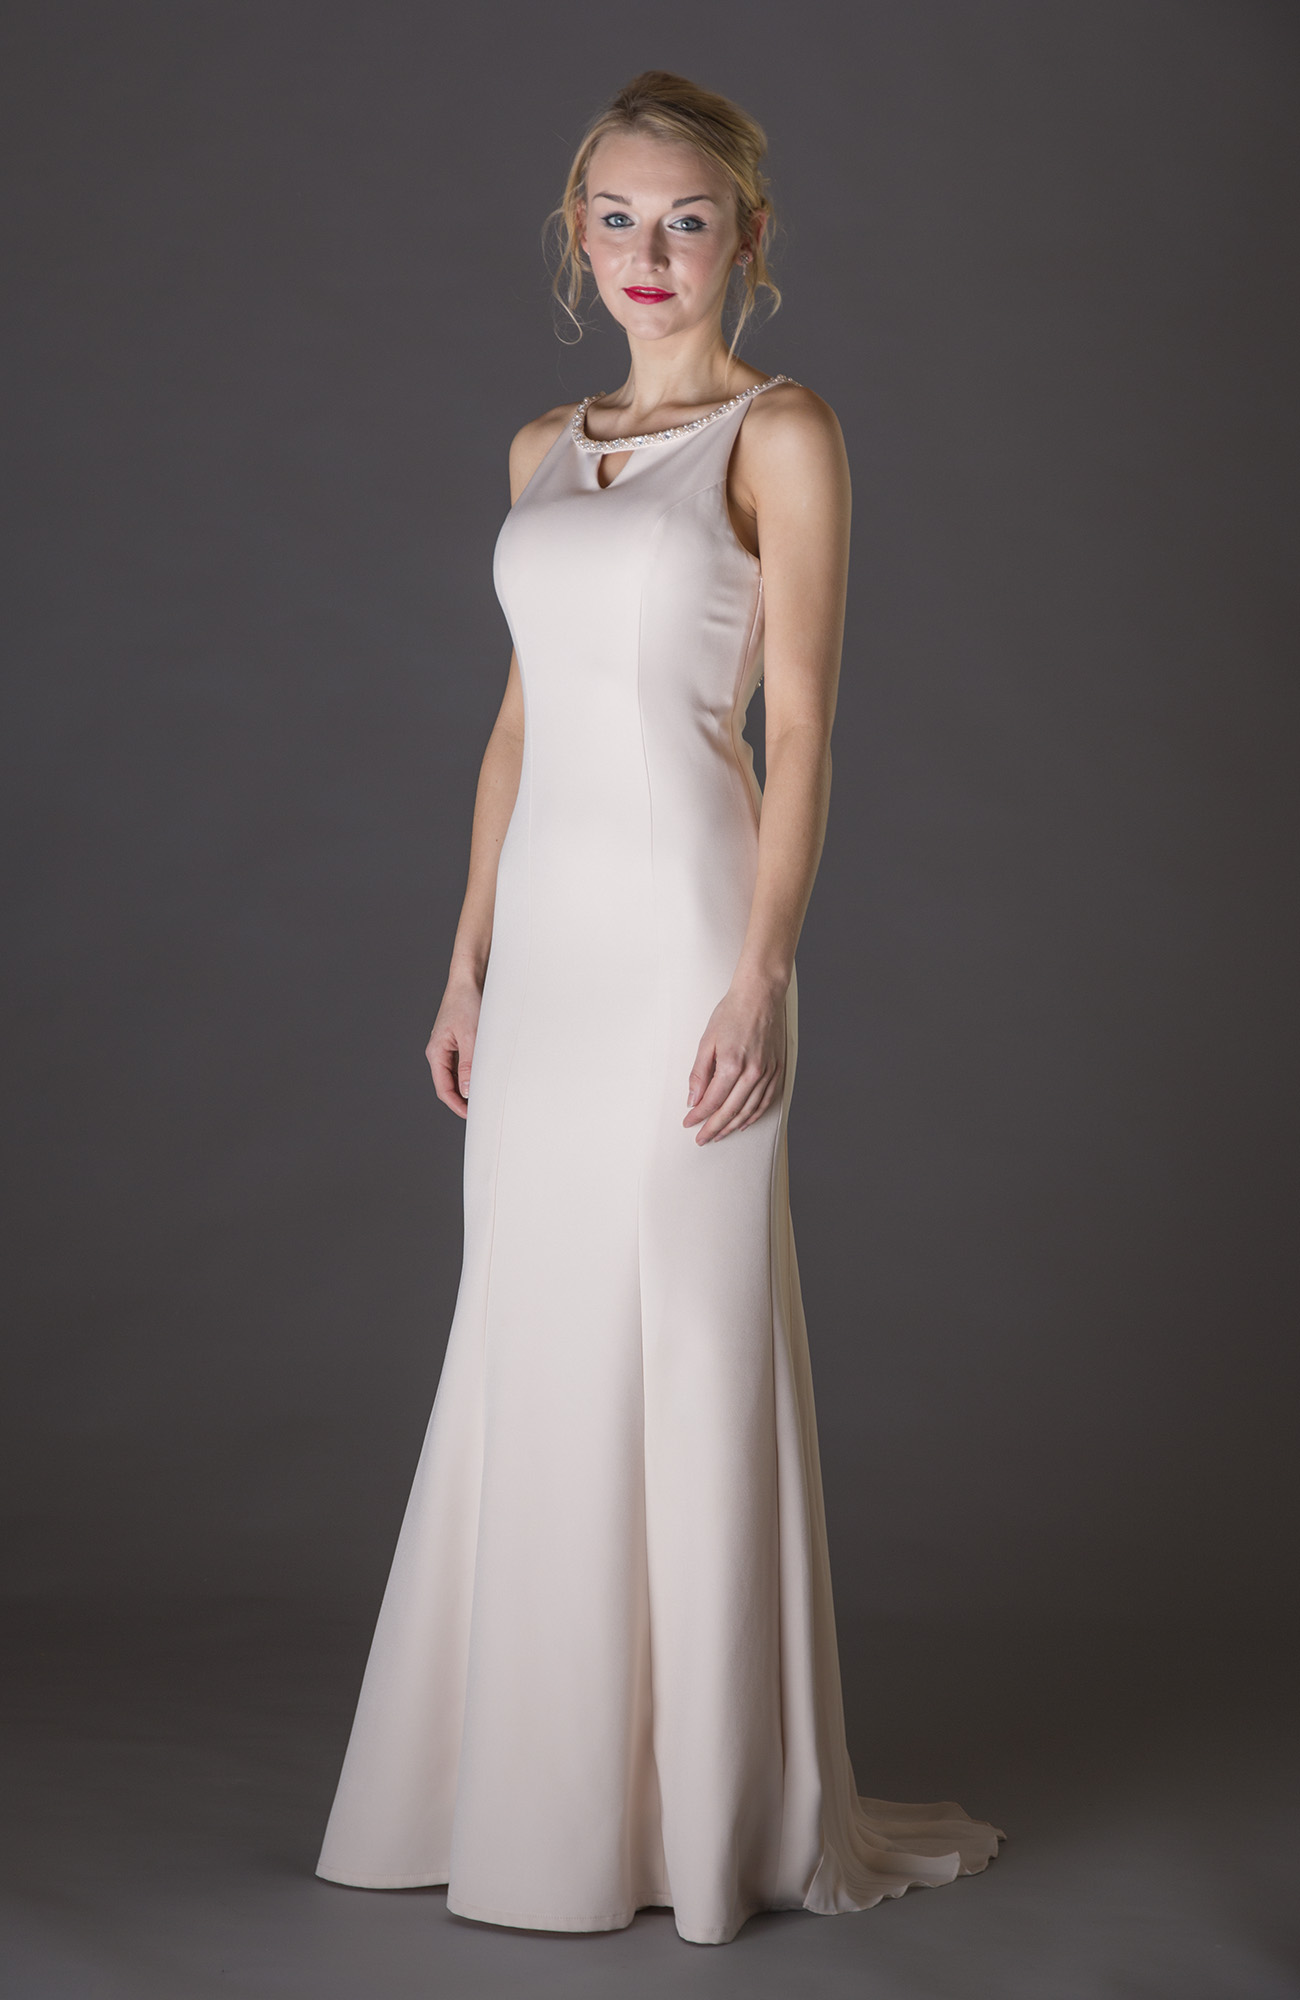 Jitters Bridesmaid Dresses from £89 - Order online at The Wedding Shop